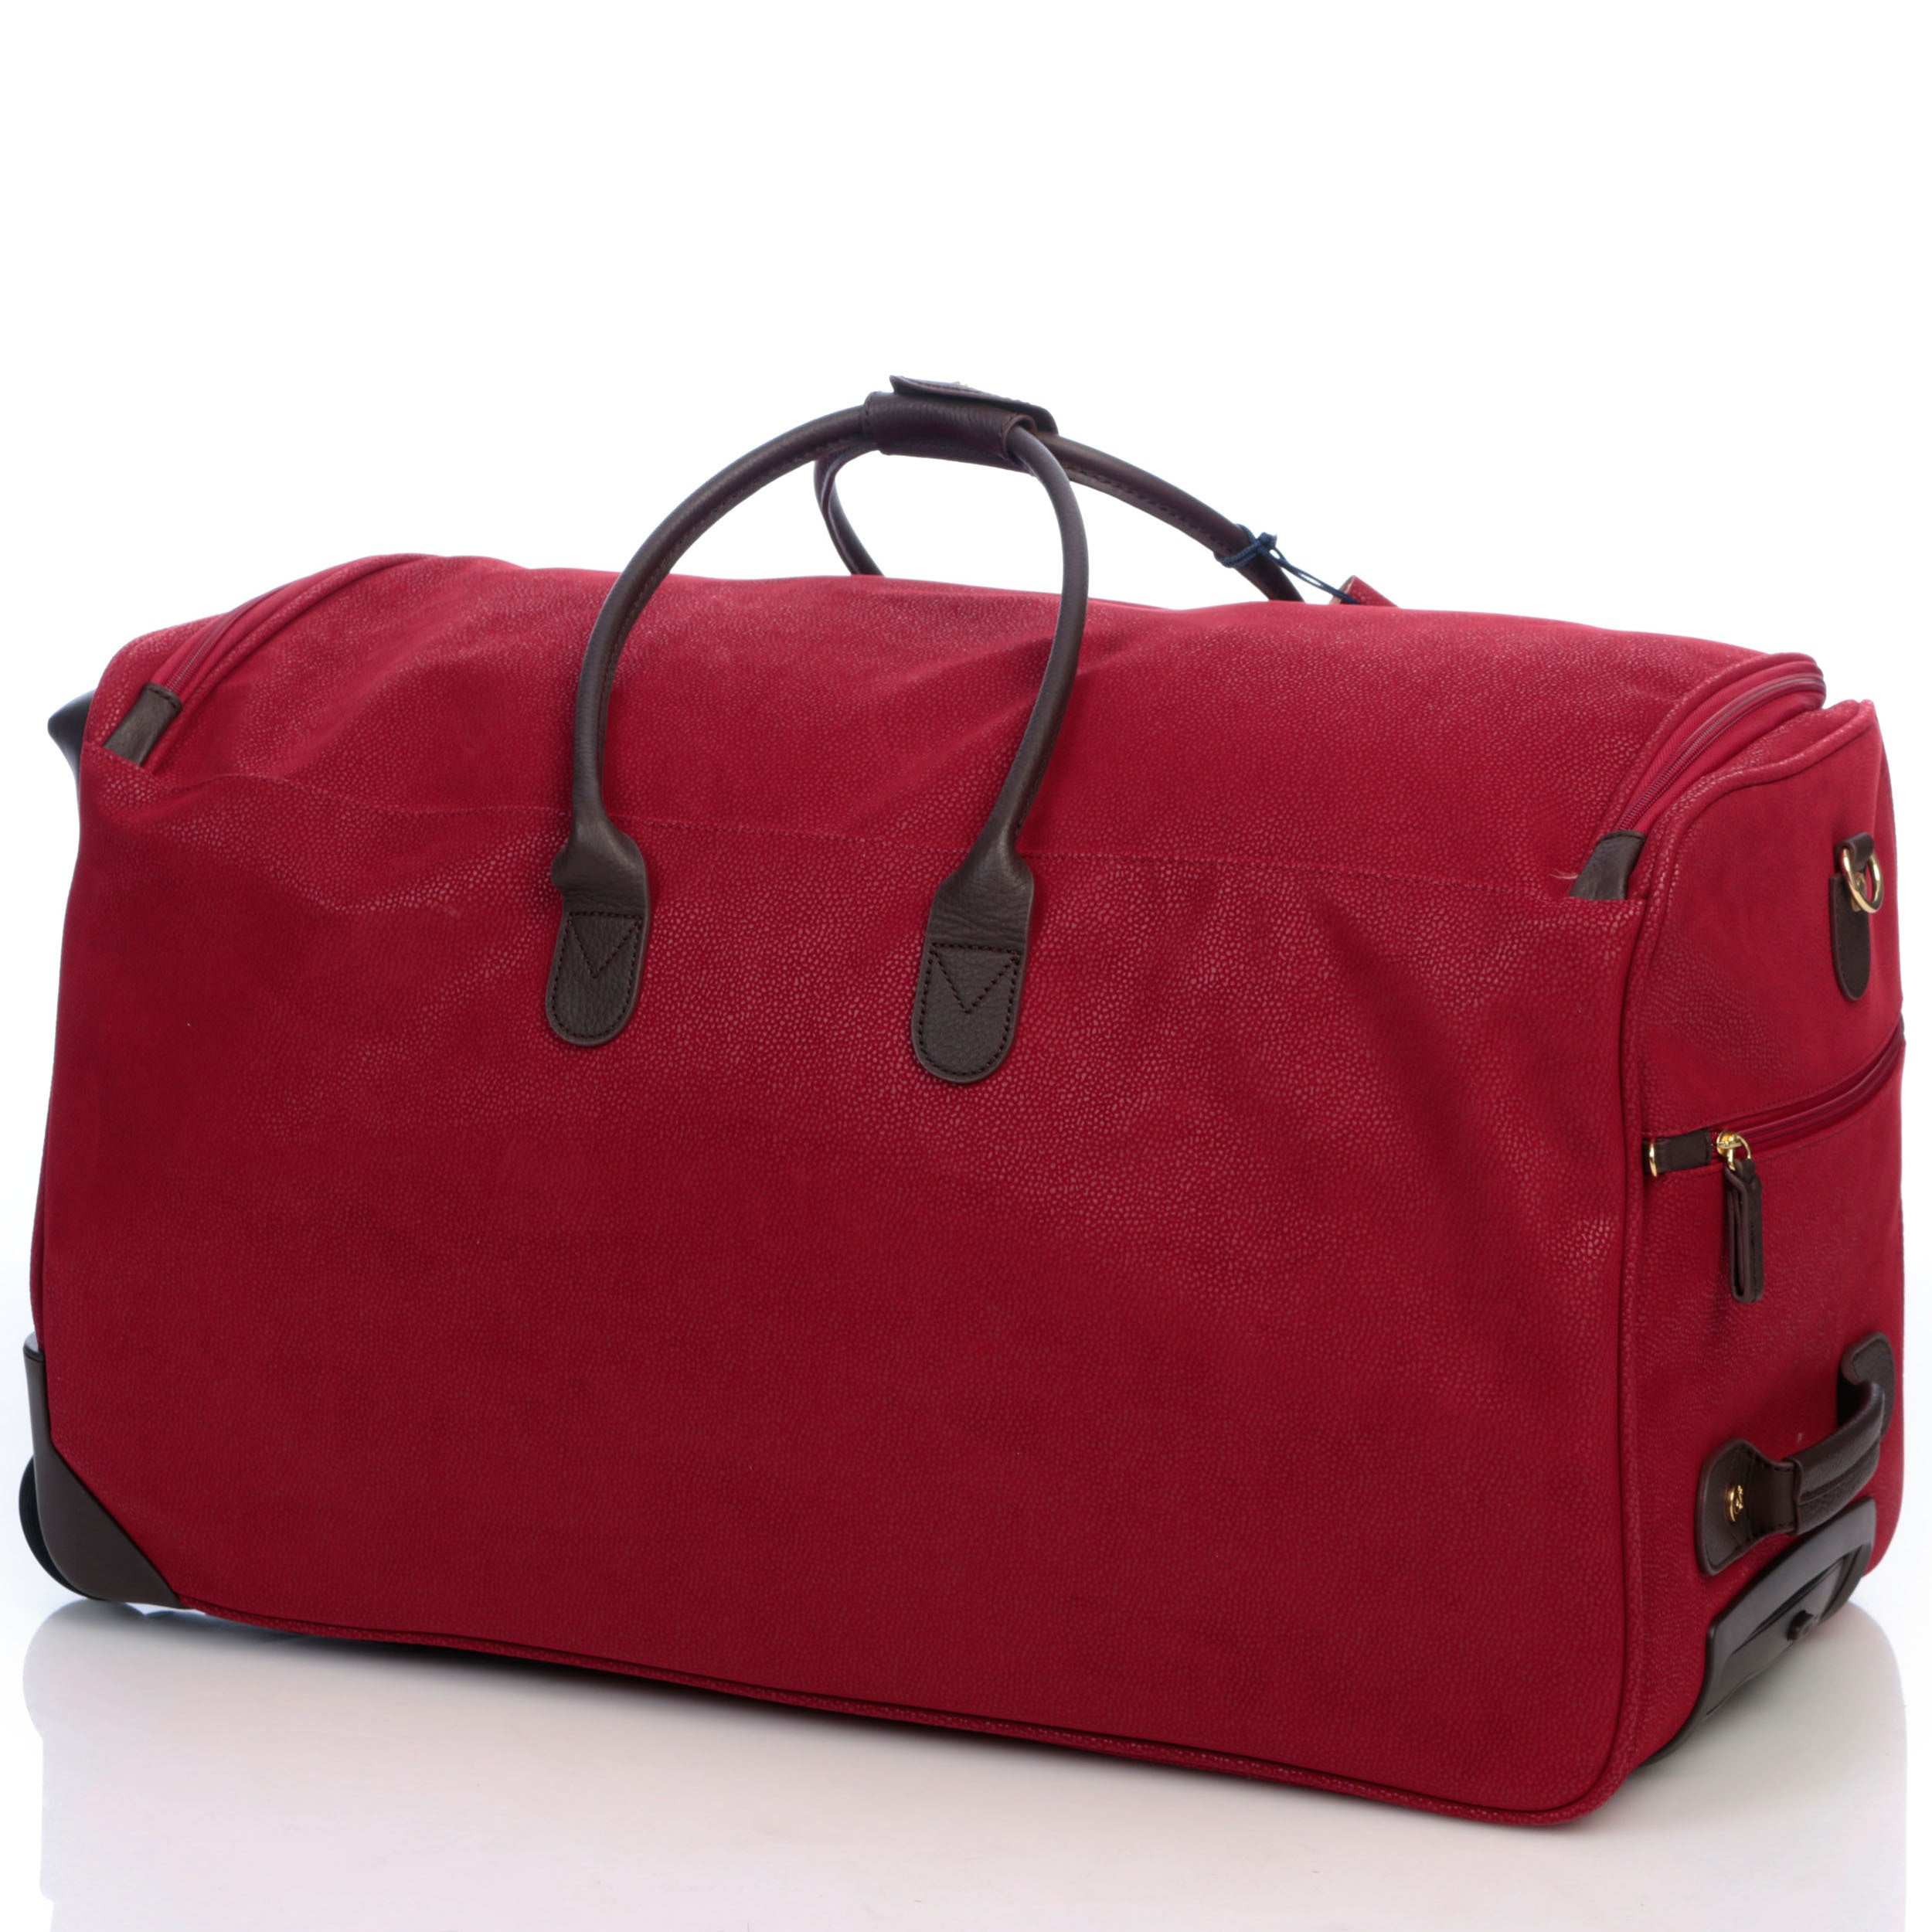 9bc0e0e81d Shop Bric s Life Red 28-inch Rolling Duffel Bag - Free Shipping Today -  Overstock - 9204614